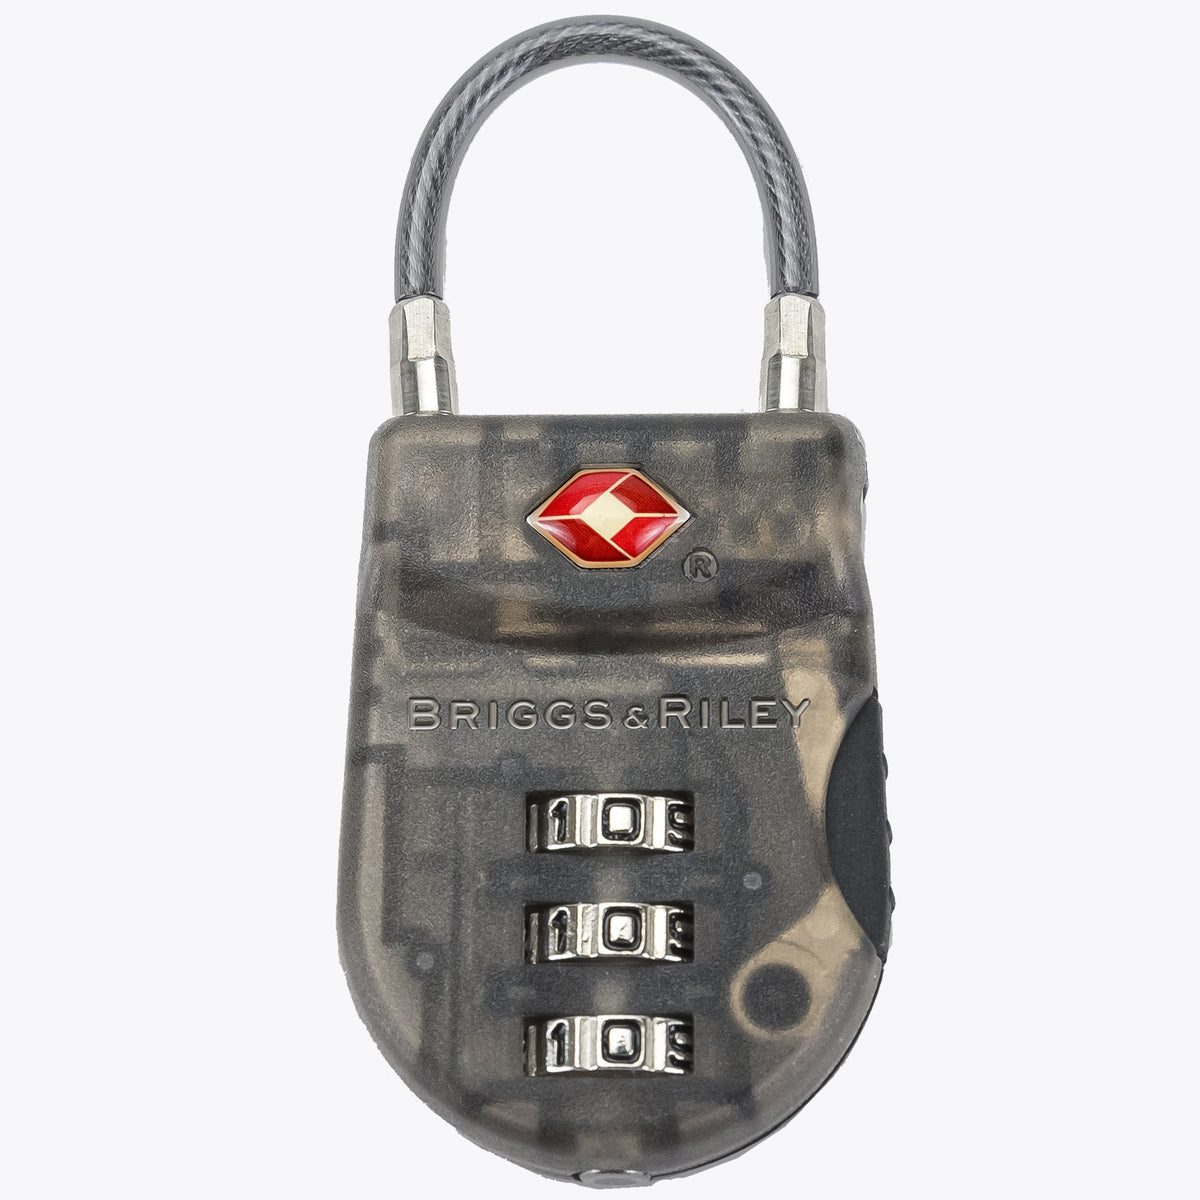 Briggs and Riley Cable Luggage Lock